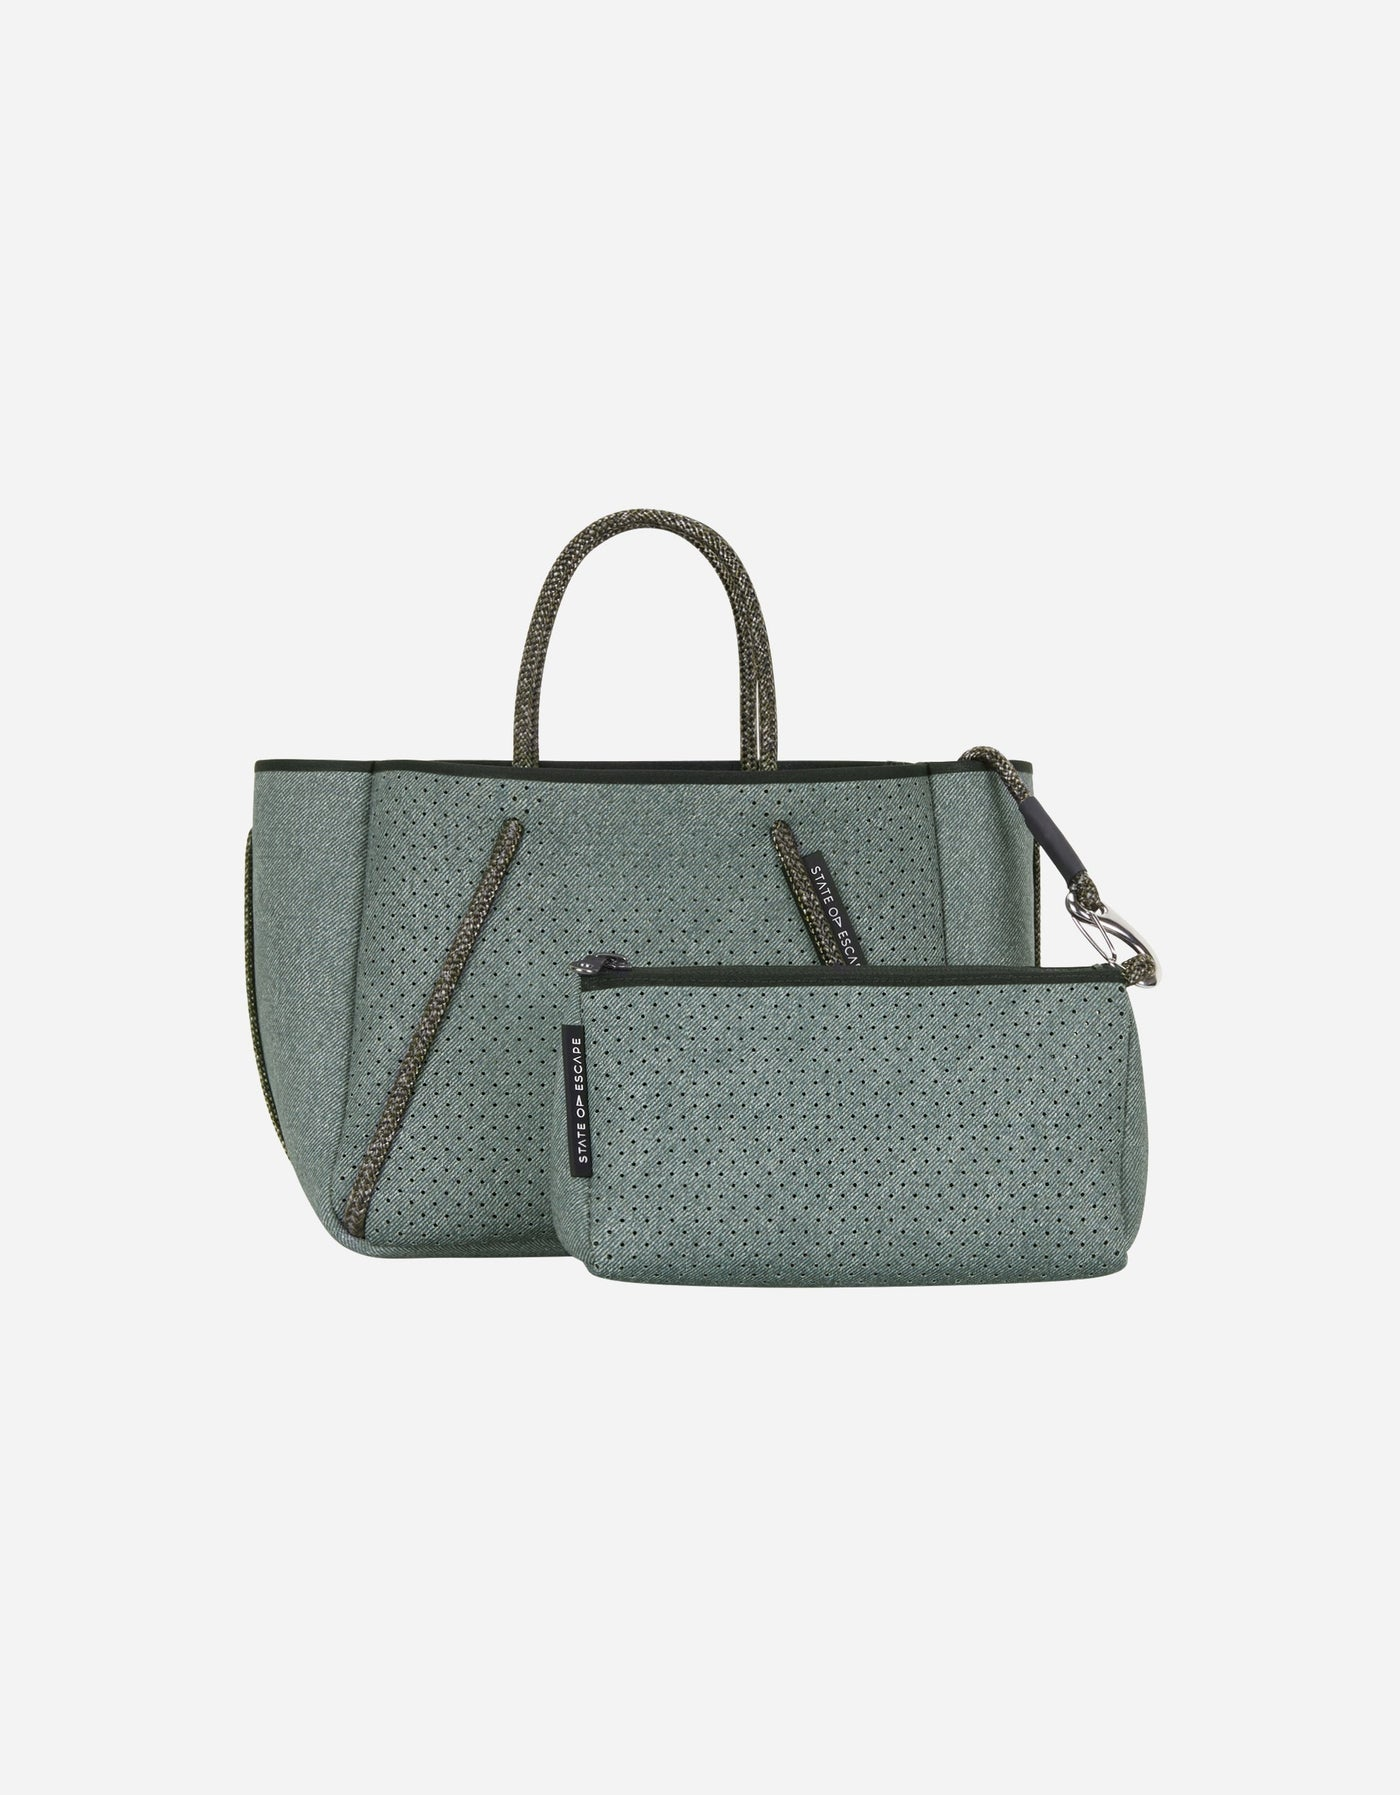 Petite Guise tote bag in washed moss denim print